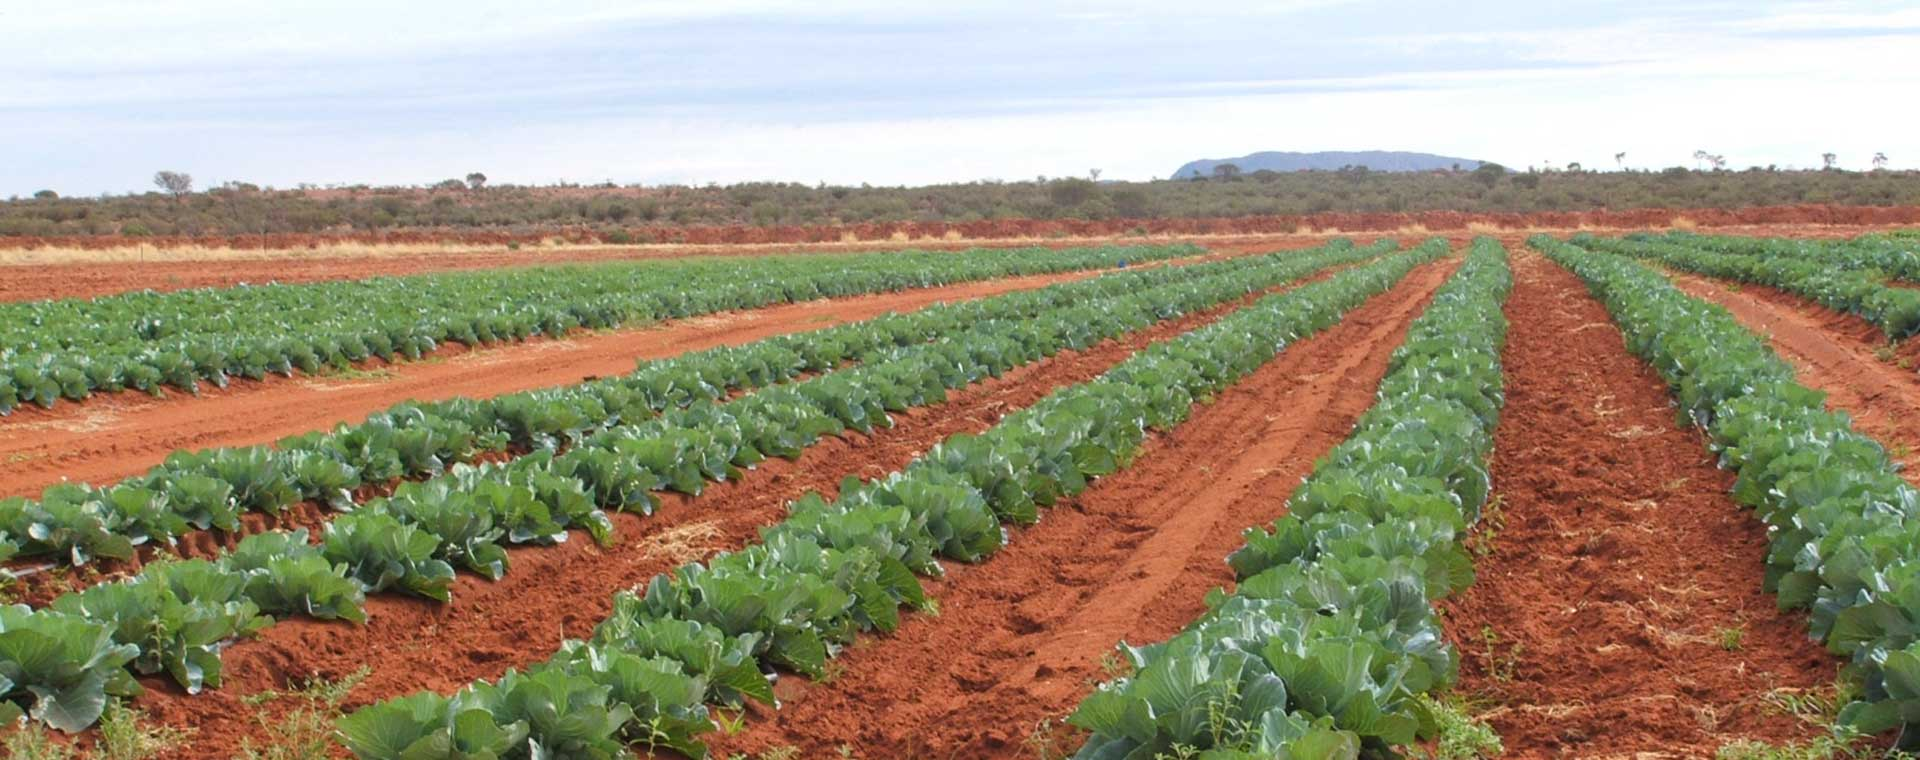 Rows of vegetables growing in paddock